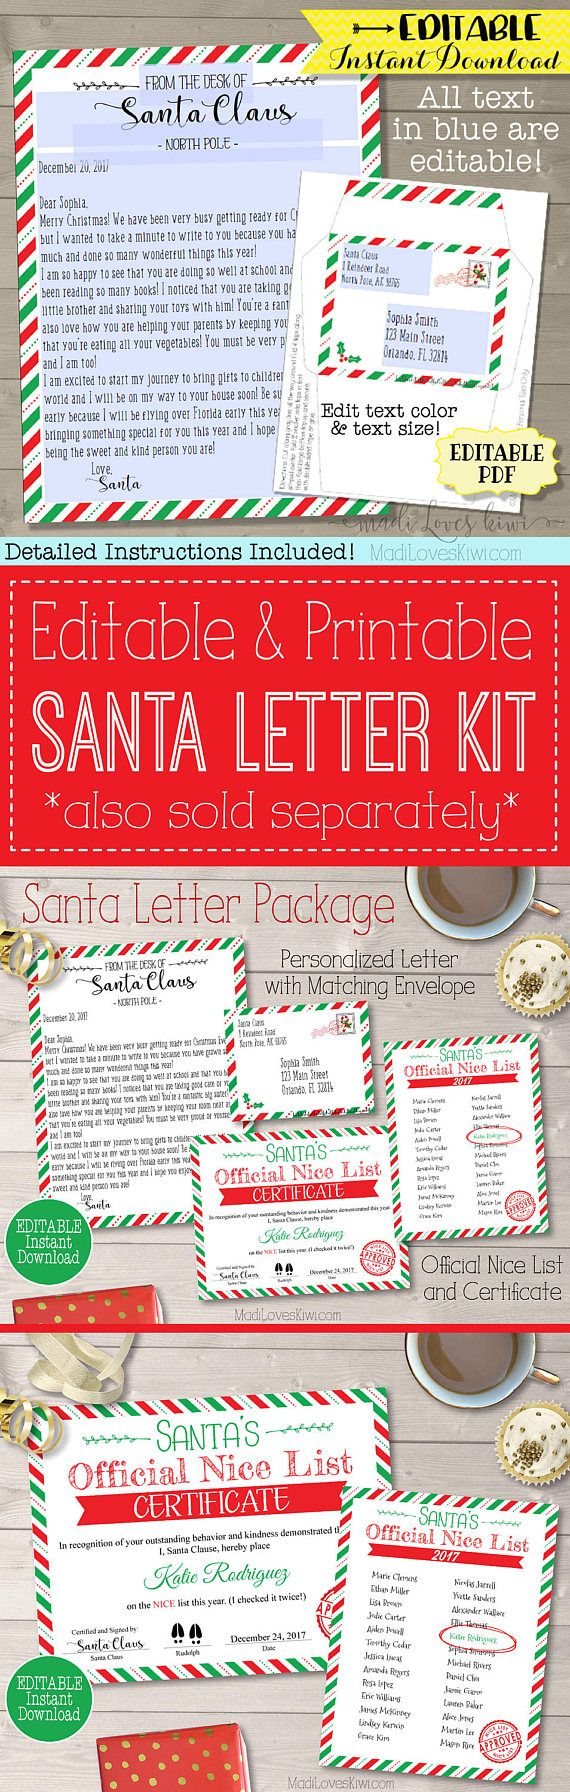 The holidays can be hectic, but this Printable Santa Letter Kit makes it easy to give your children an enchanting Christmas year after year!  | MadiLovesKiwi.com | Santa Letter Package, Letter from Santa Claus Printable, Santa Letter Template, Nice List Certificate Printable, Editable Santa's Nice List, Christmas Mail, Nice List, Santa's Nice List, Nice List Printable, Printable Nice List,  Christmas printables, Stocking stuffers, Christmas Traditions for Kids, Christmas Ideas for Kids